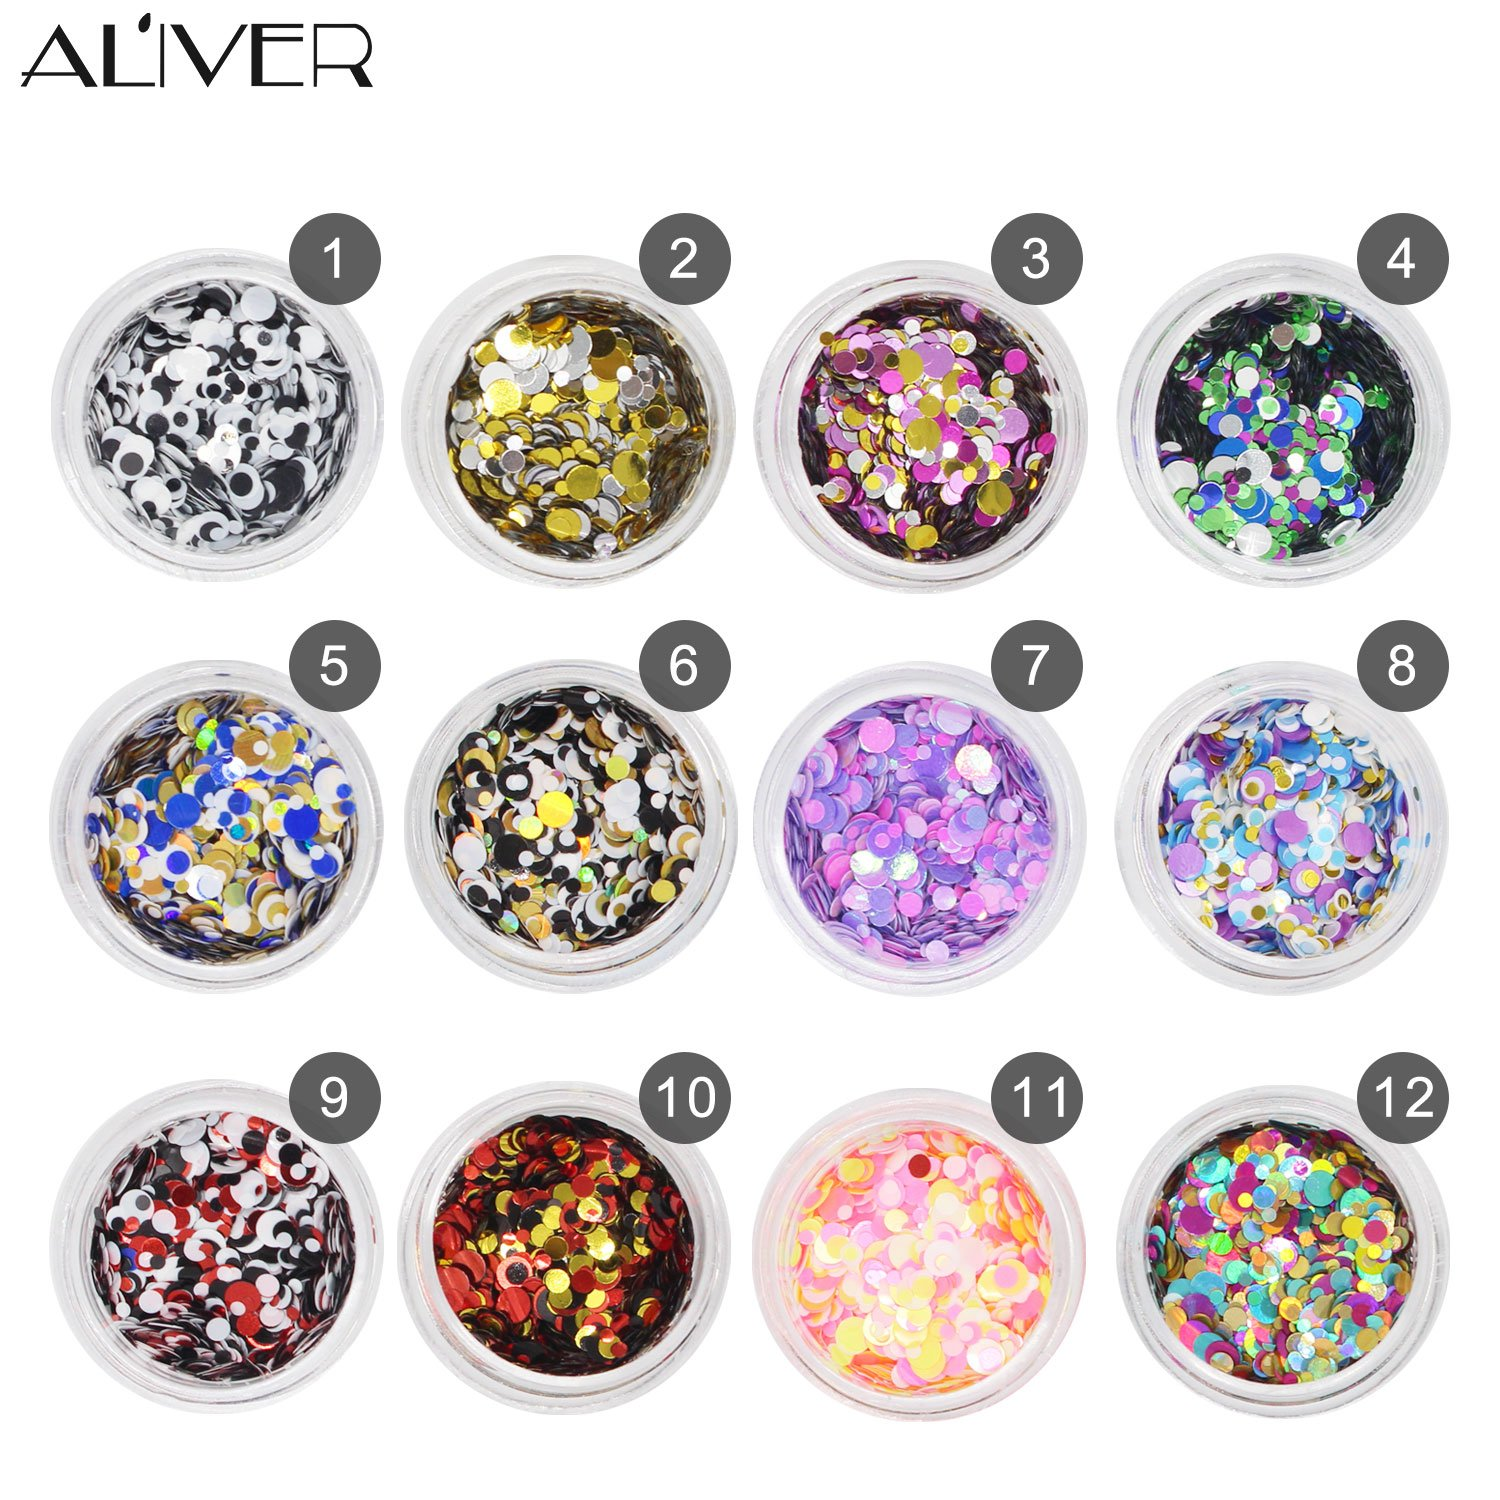 Aliver Sequins del chiodo del chiodo 12 colori UV Gel DIY Glitter Decorazione Nail Art Sequins Polvere Moulis